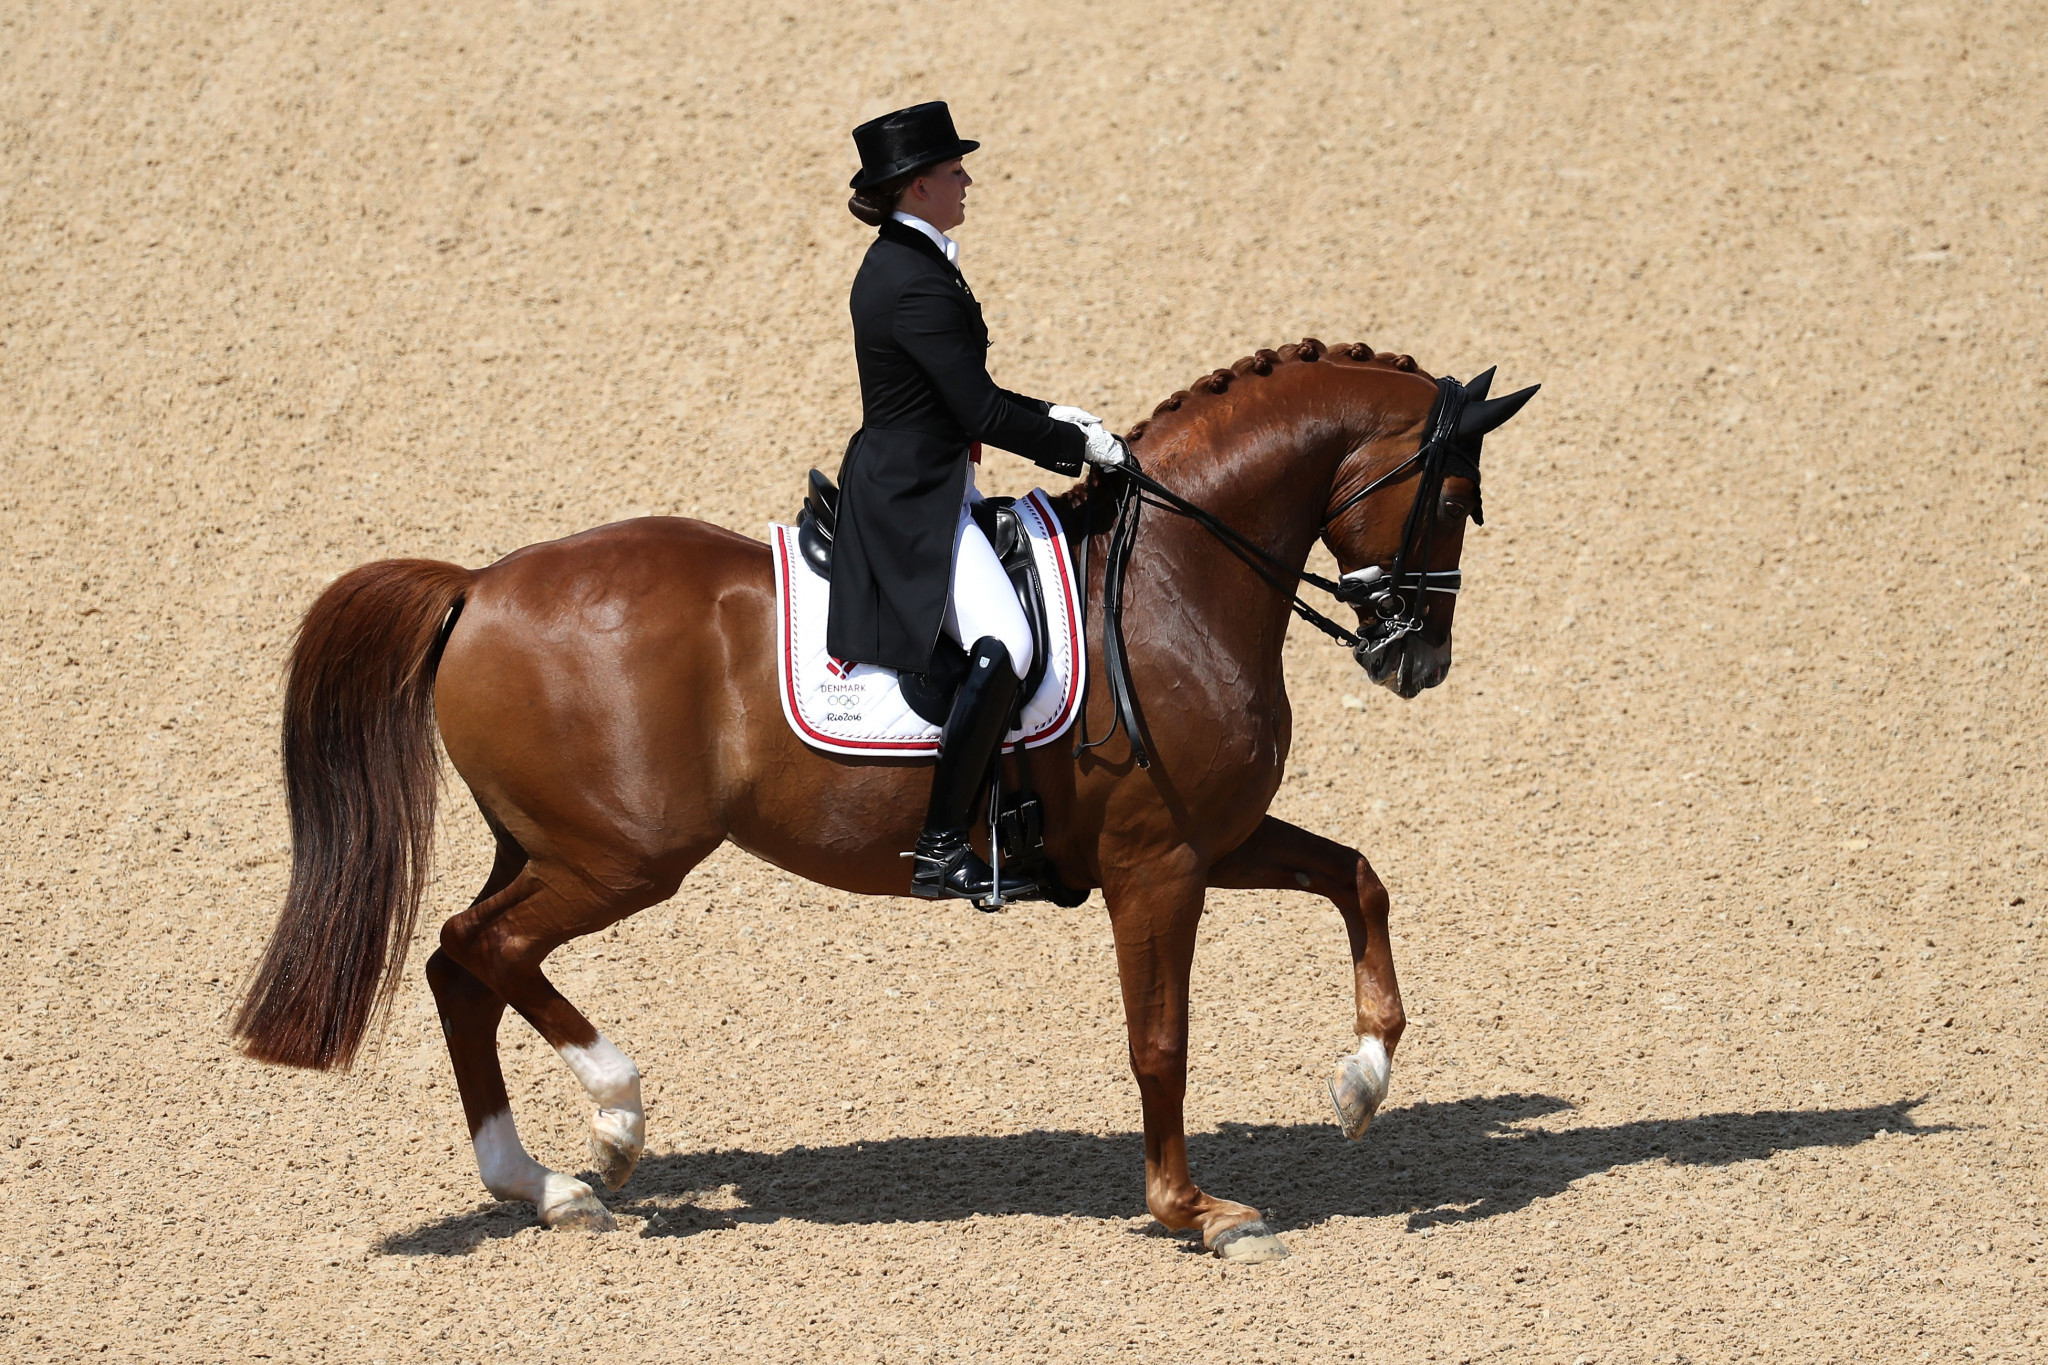 Measures in Hangzhou will look to protect horses during the 2022 Asian Games ©Getty Images